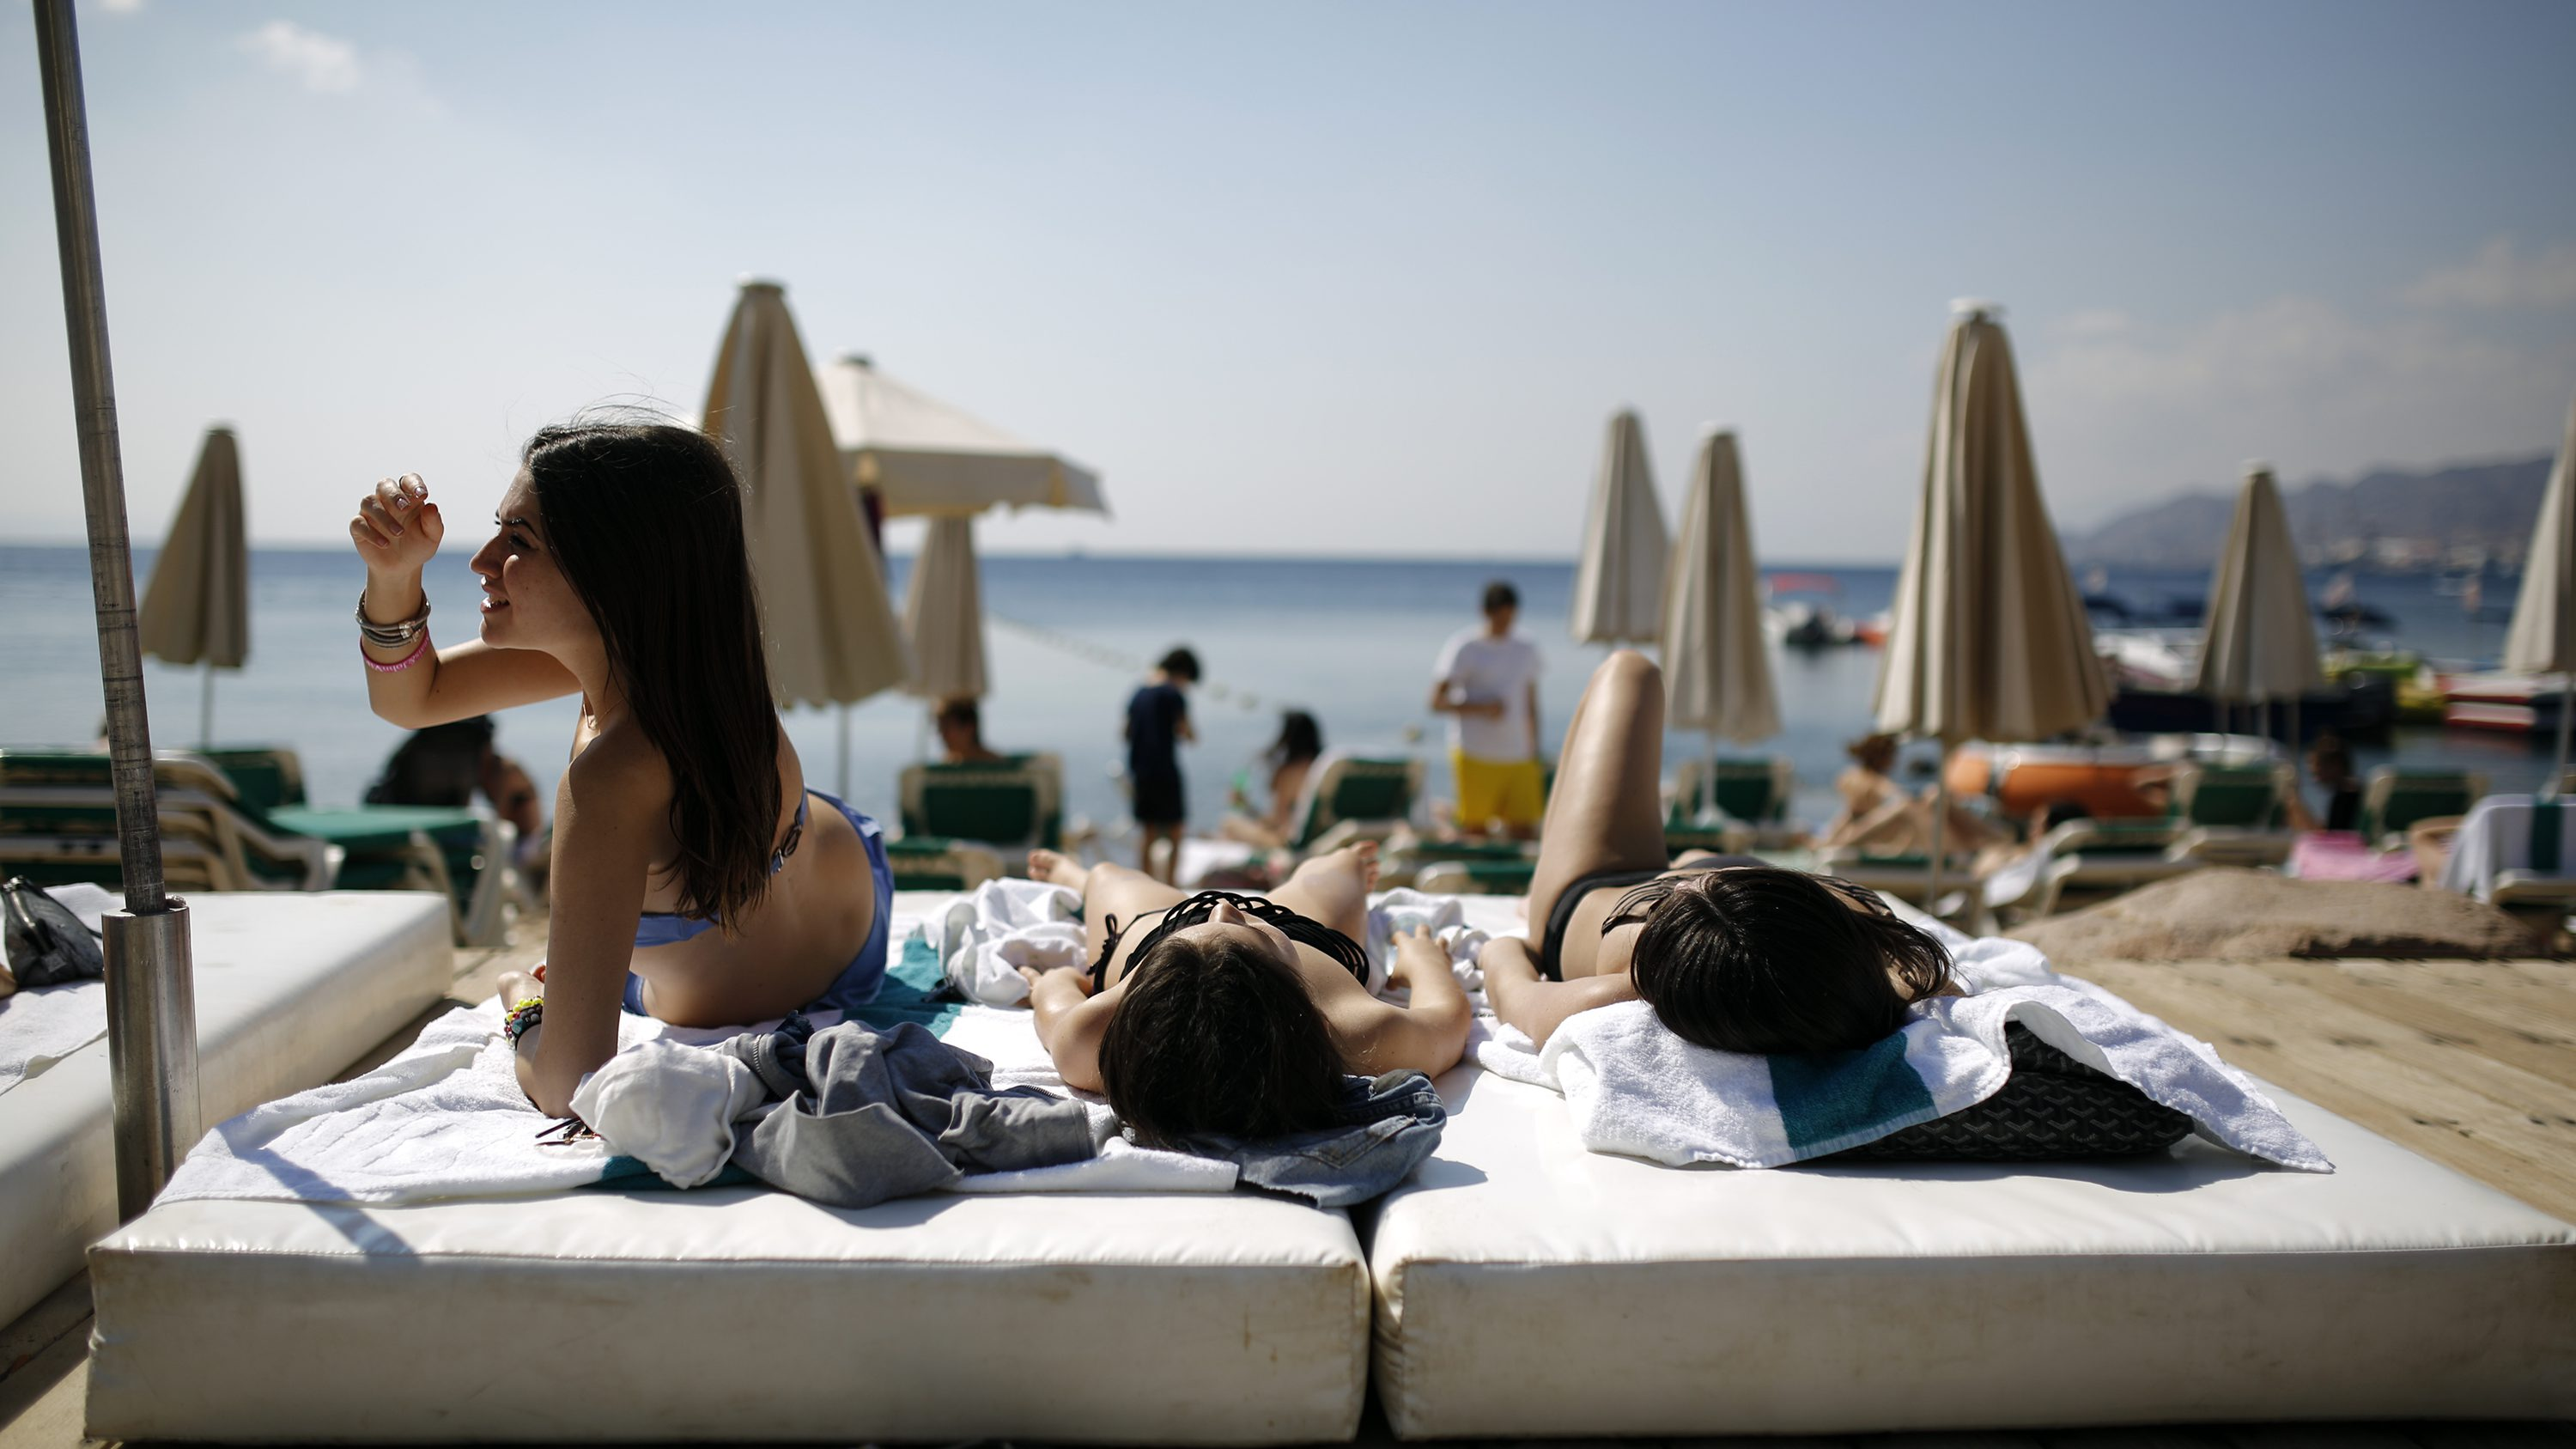 Tourists sunbathe on the beach in the Red Sea resort city of Eilat, one of Israel's most popular holiday spots, February 17, 2014.